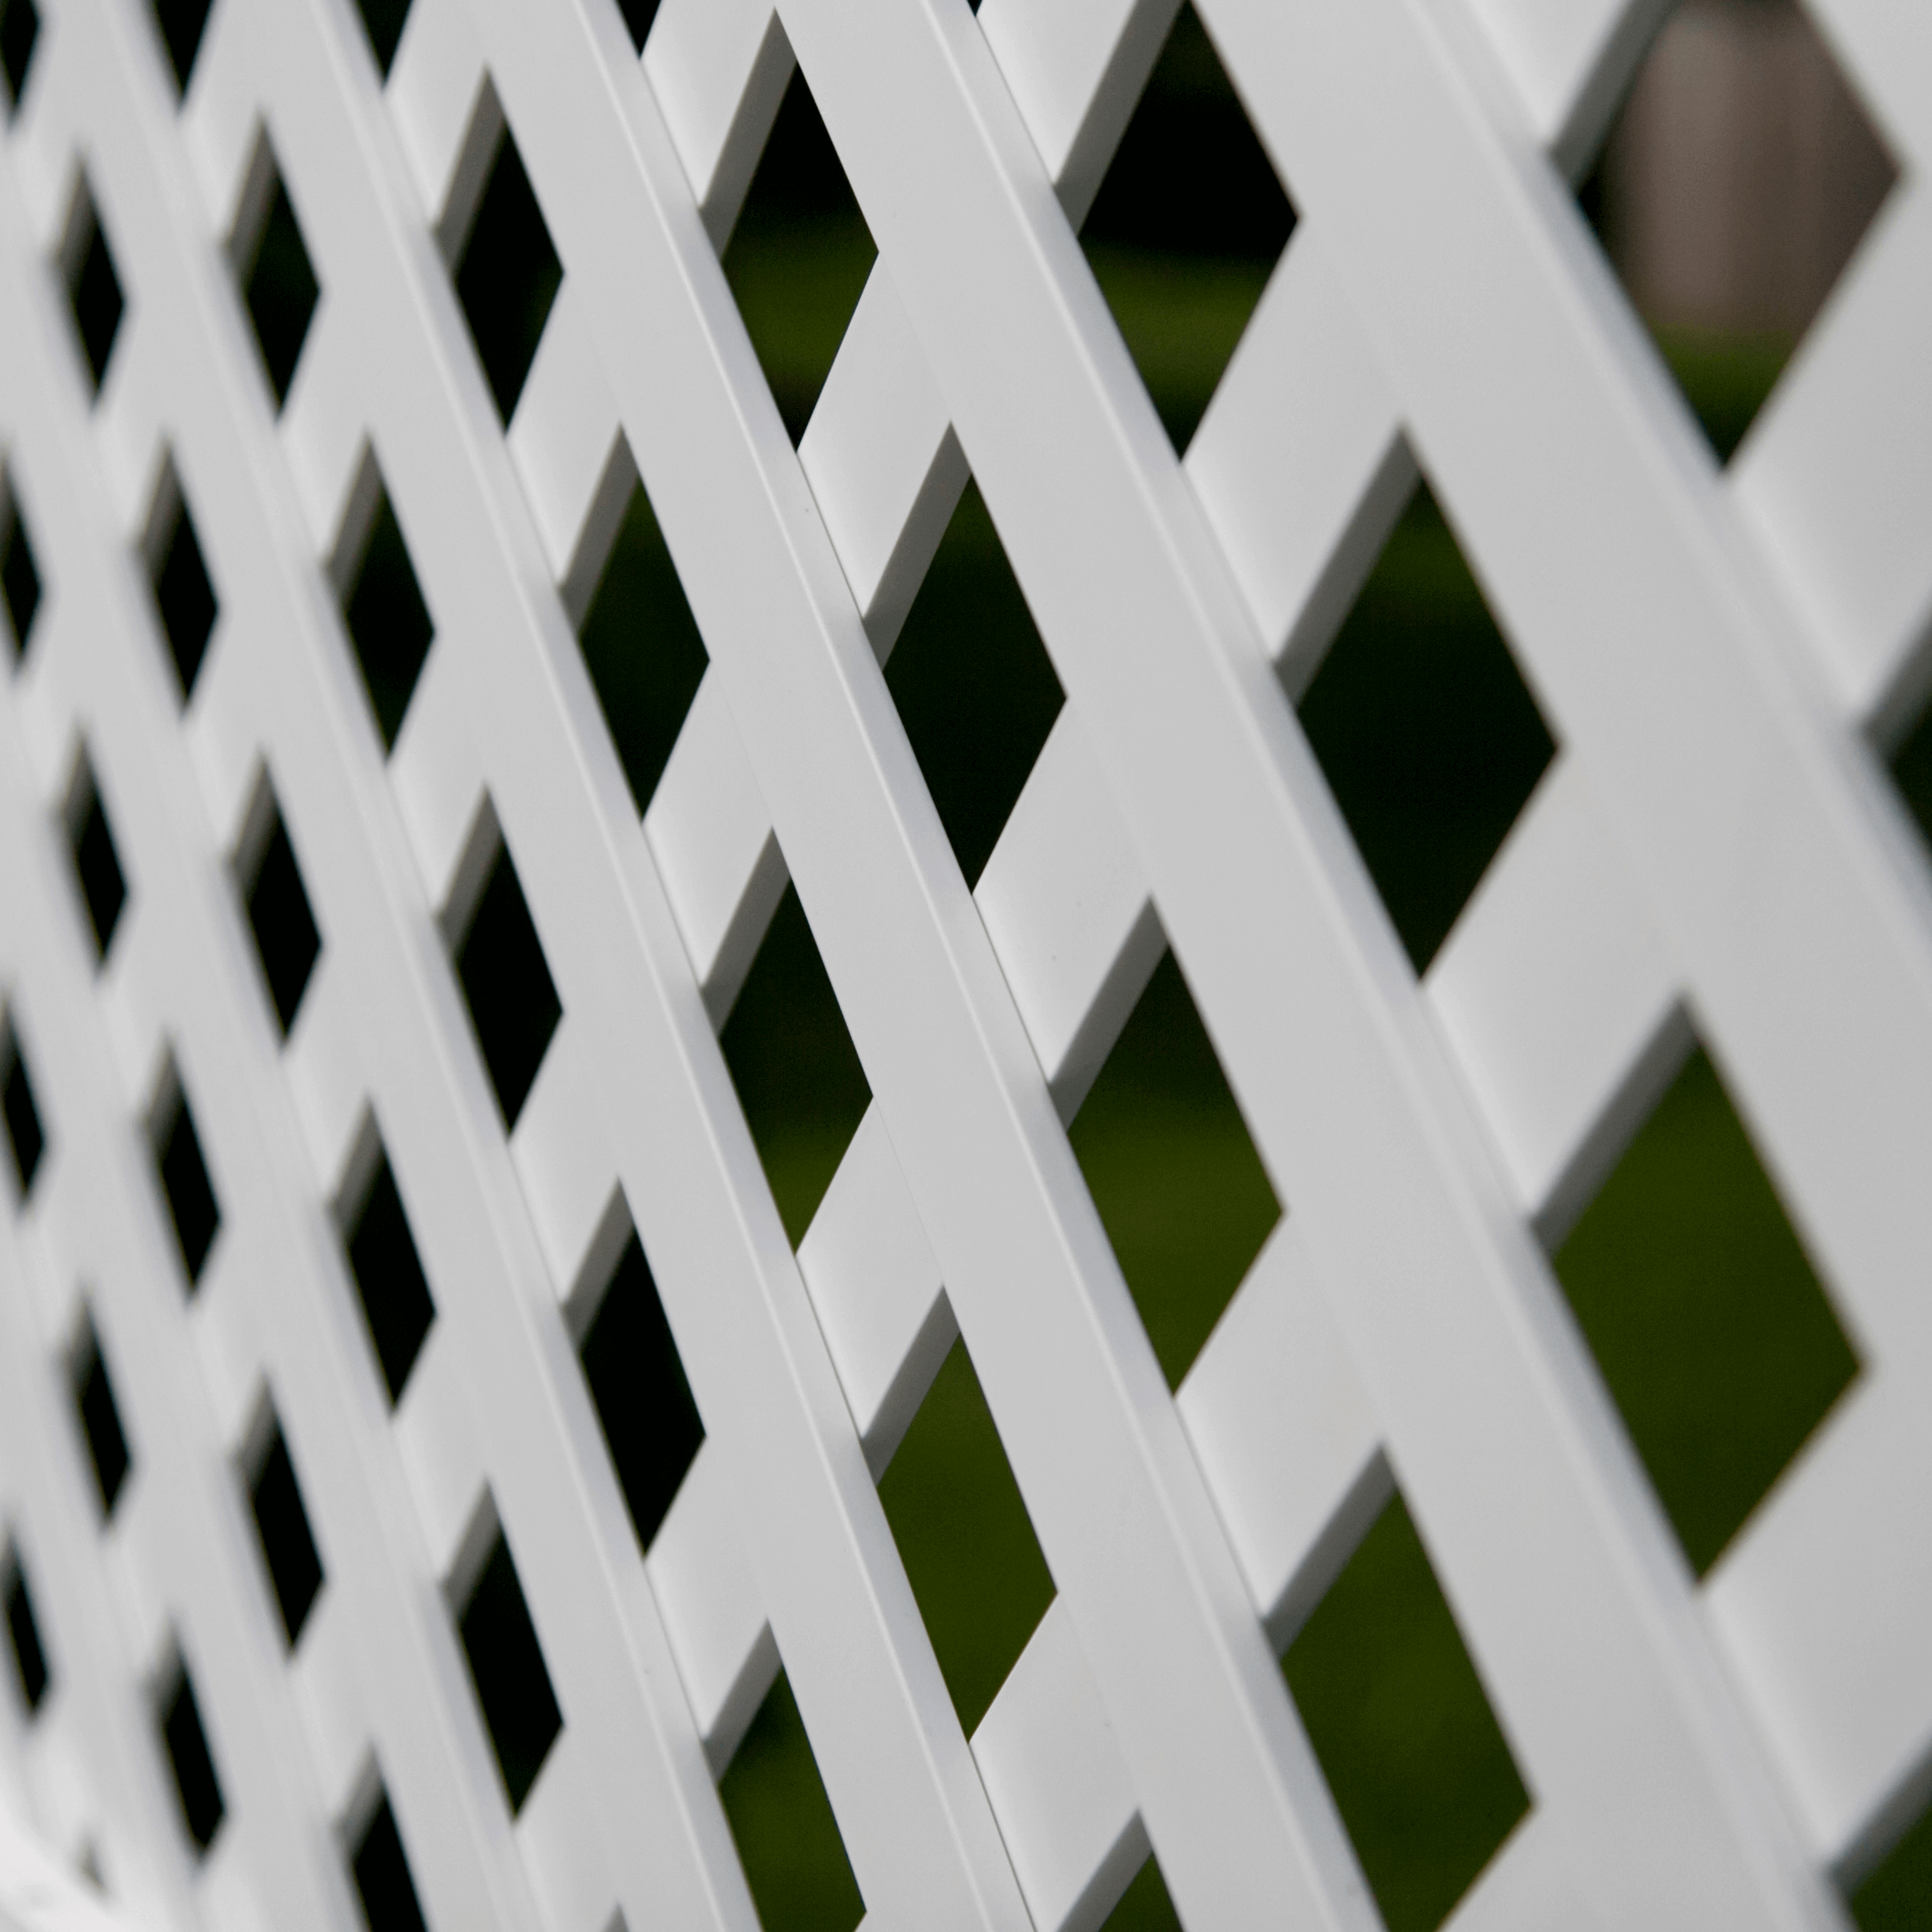 Vinyl Lattice Functional Durable Affordable